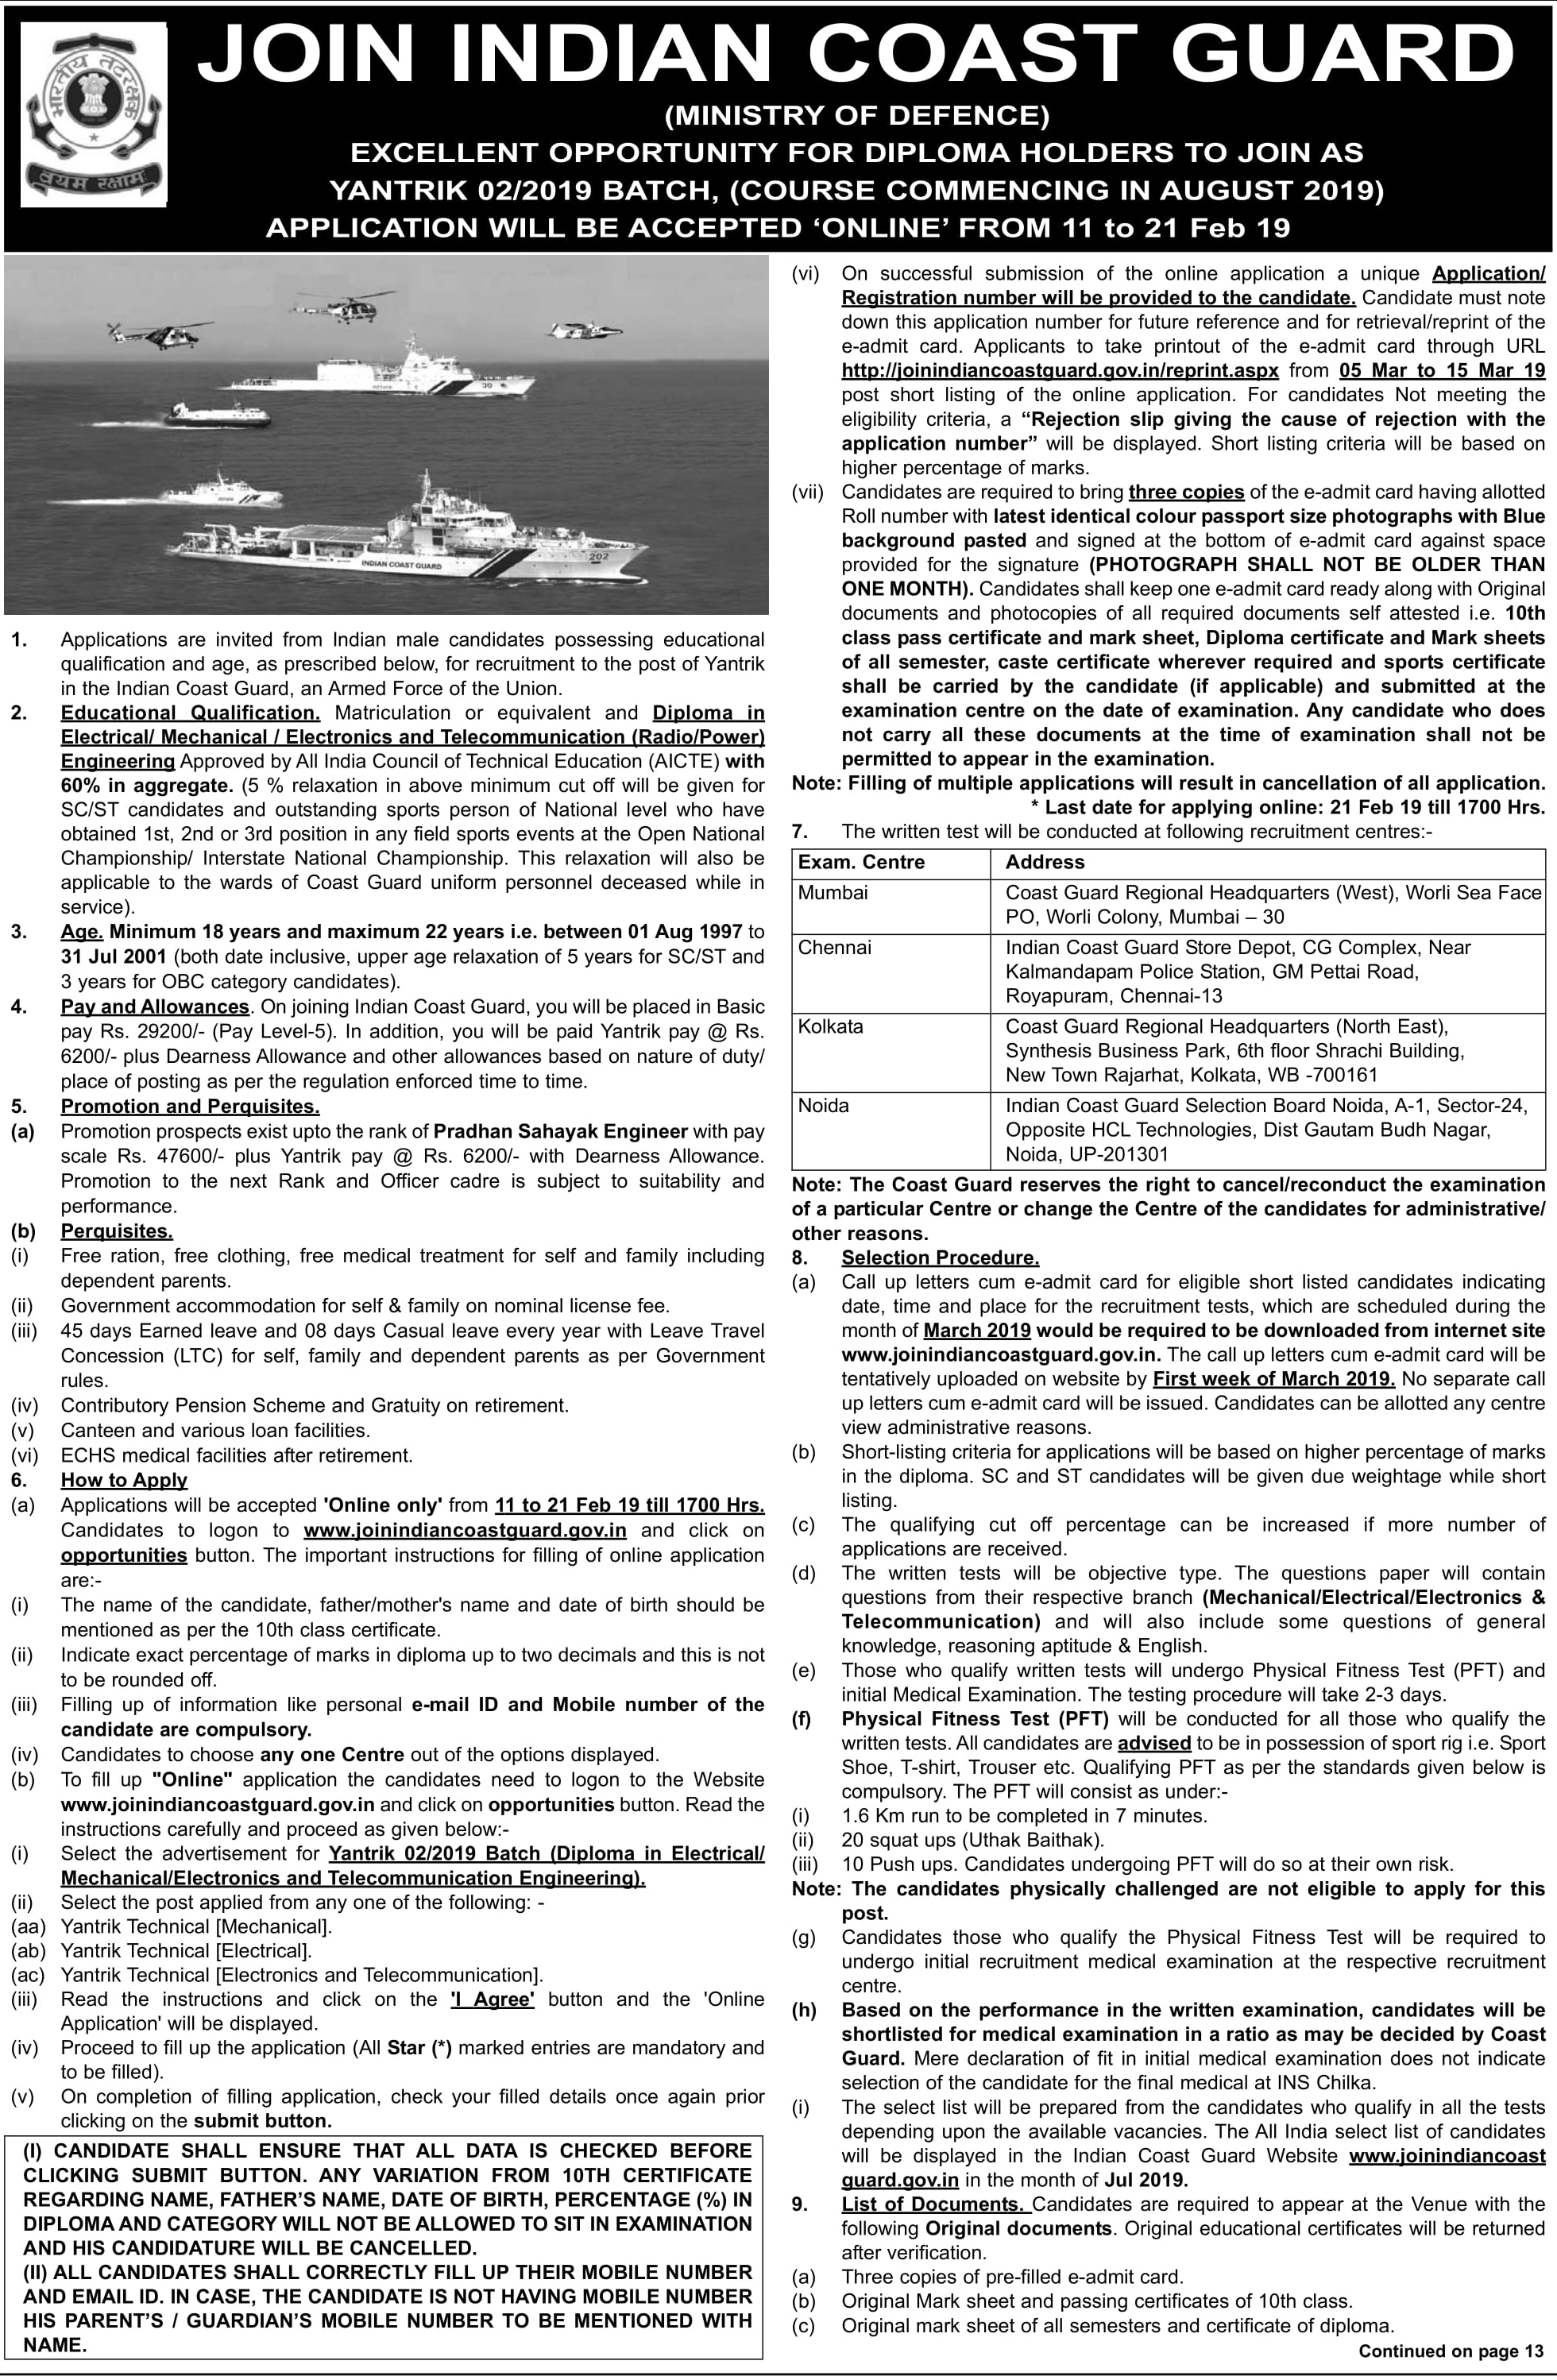 Indian Coast Guard 02/2019 Notification Check